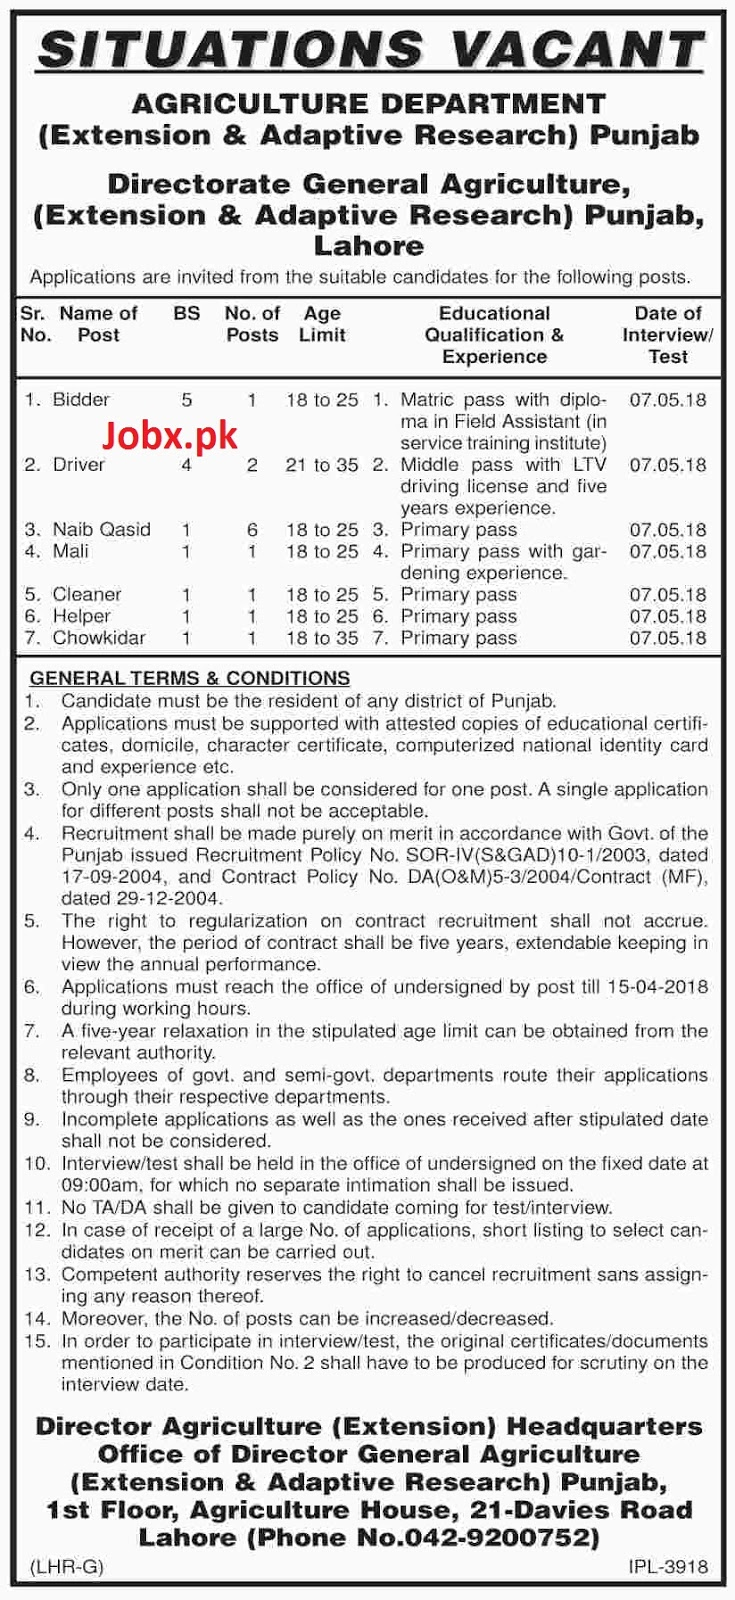 Situations Vacant in Agriculture Department Extension & Adaptive Research